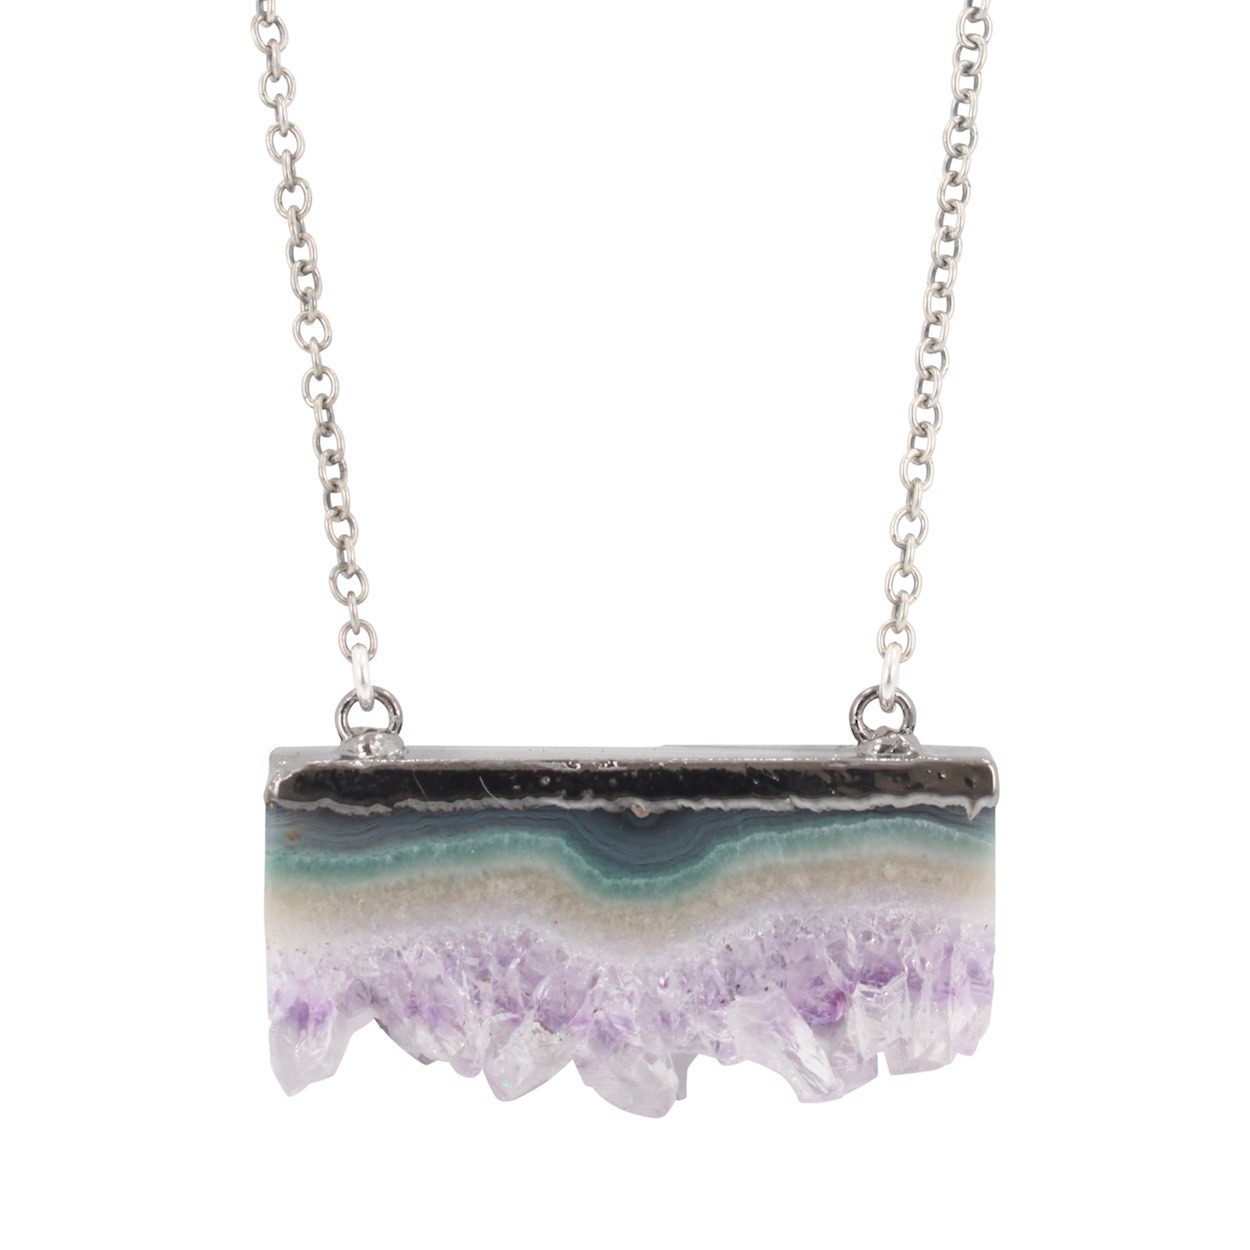 Raw Amethyst Necklace in Oxidized Sterling Silver, #6315-oxd by